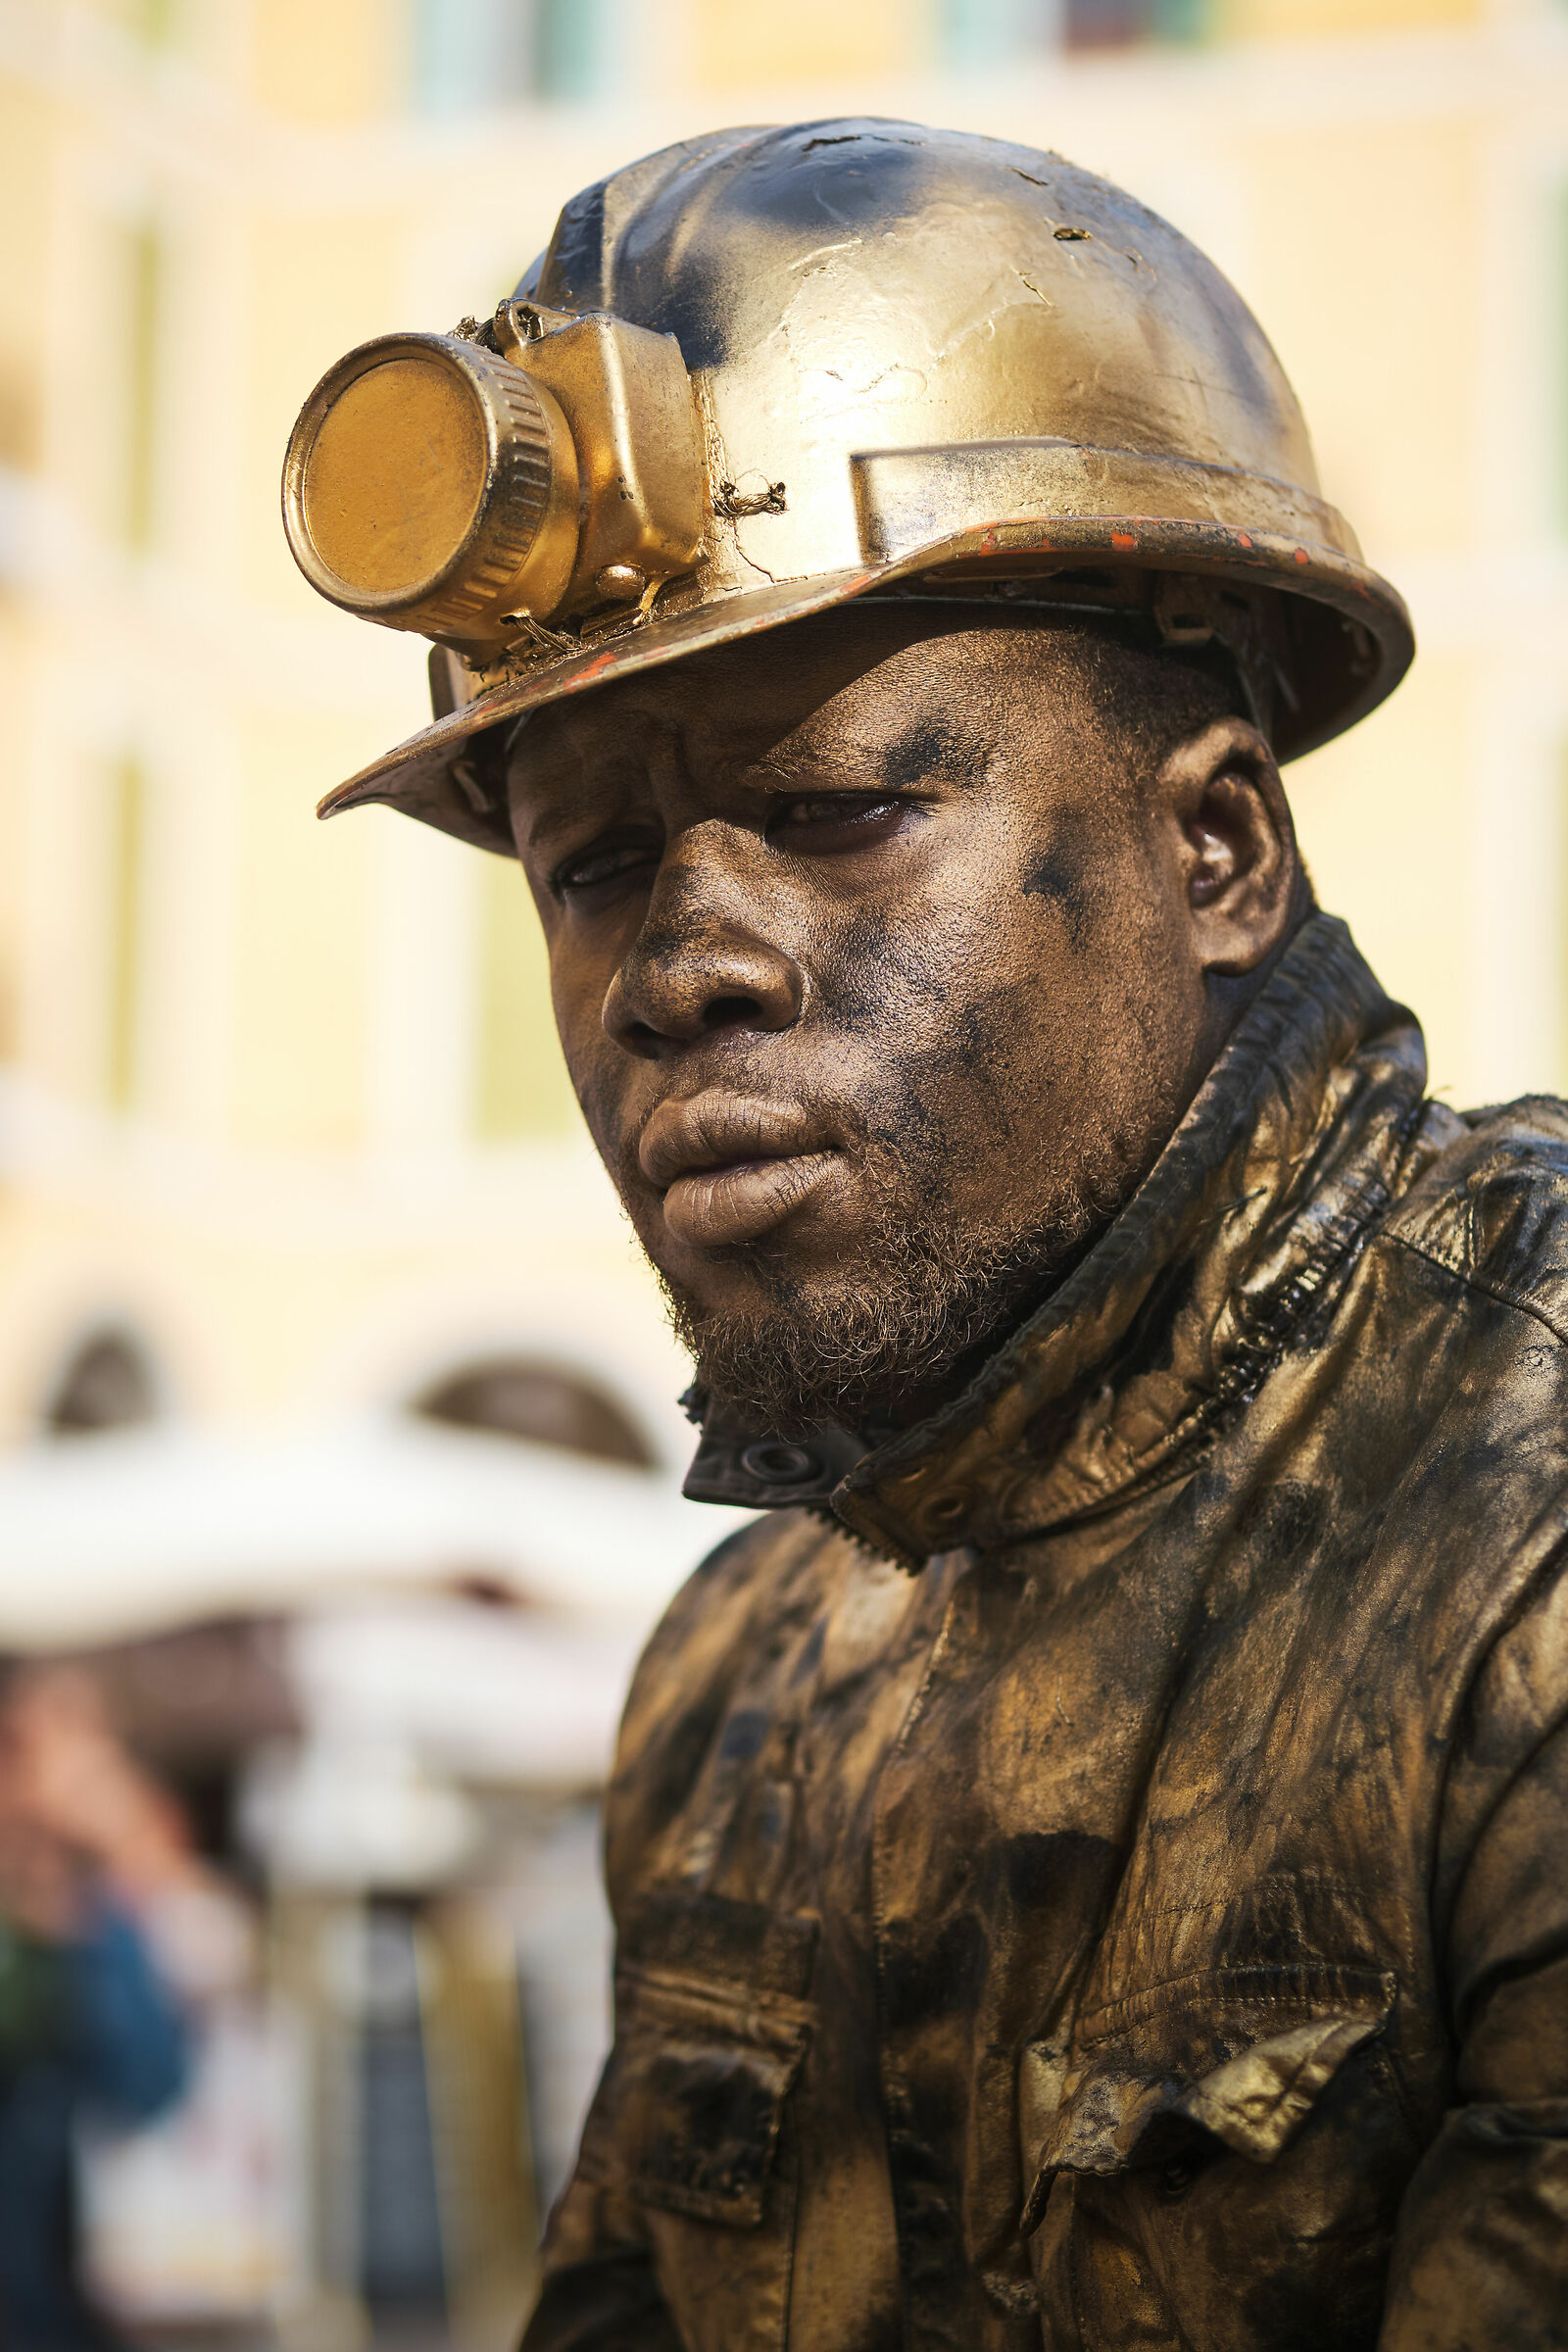 The Miner...